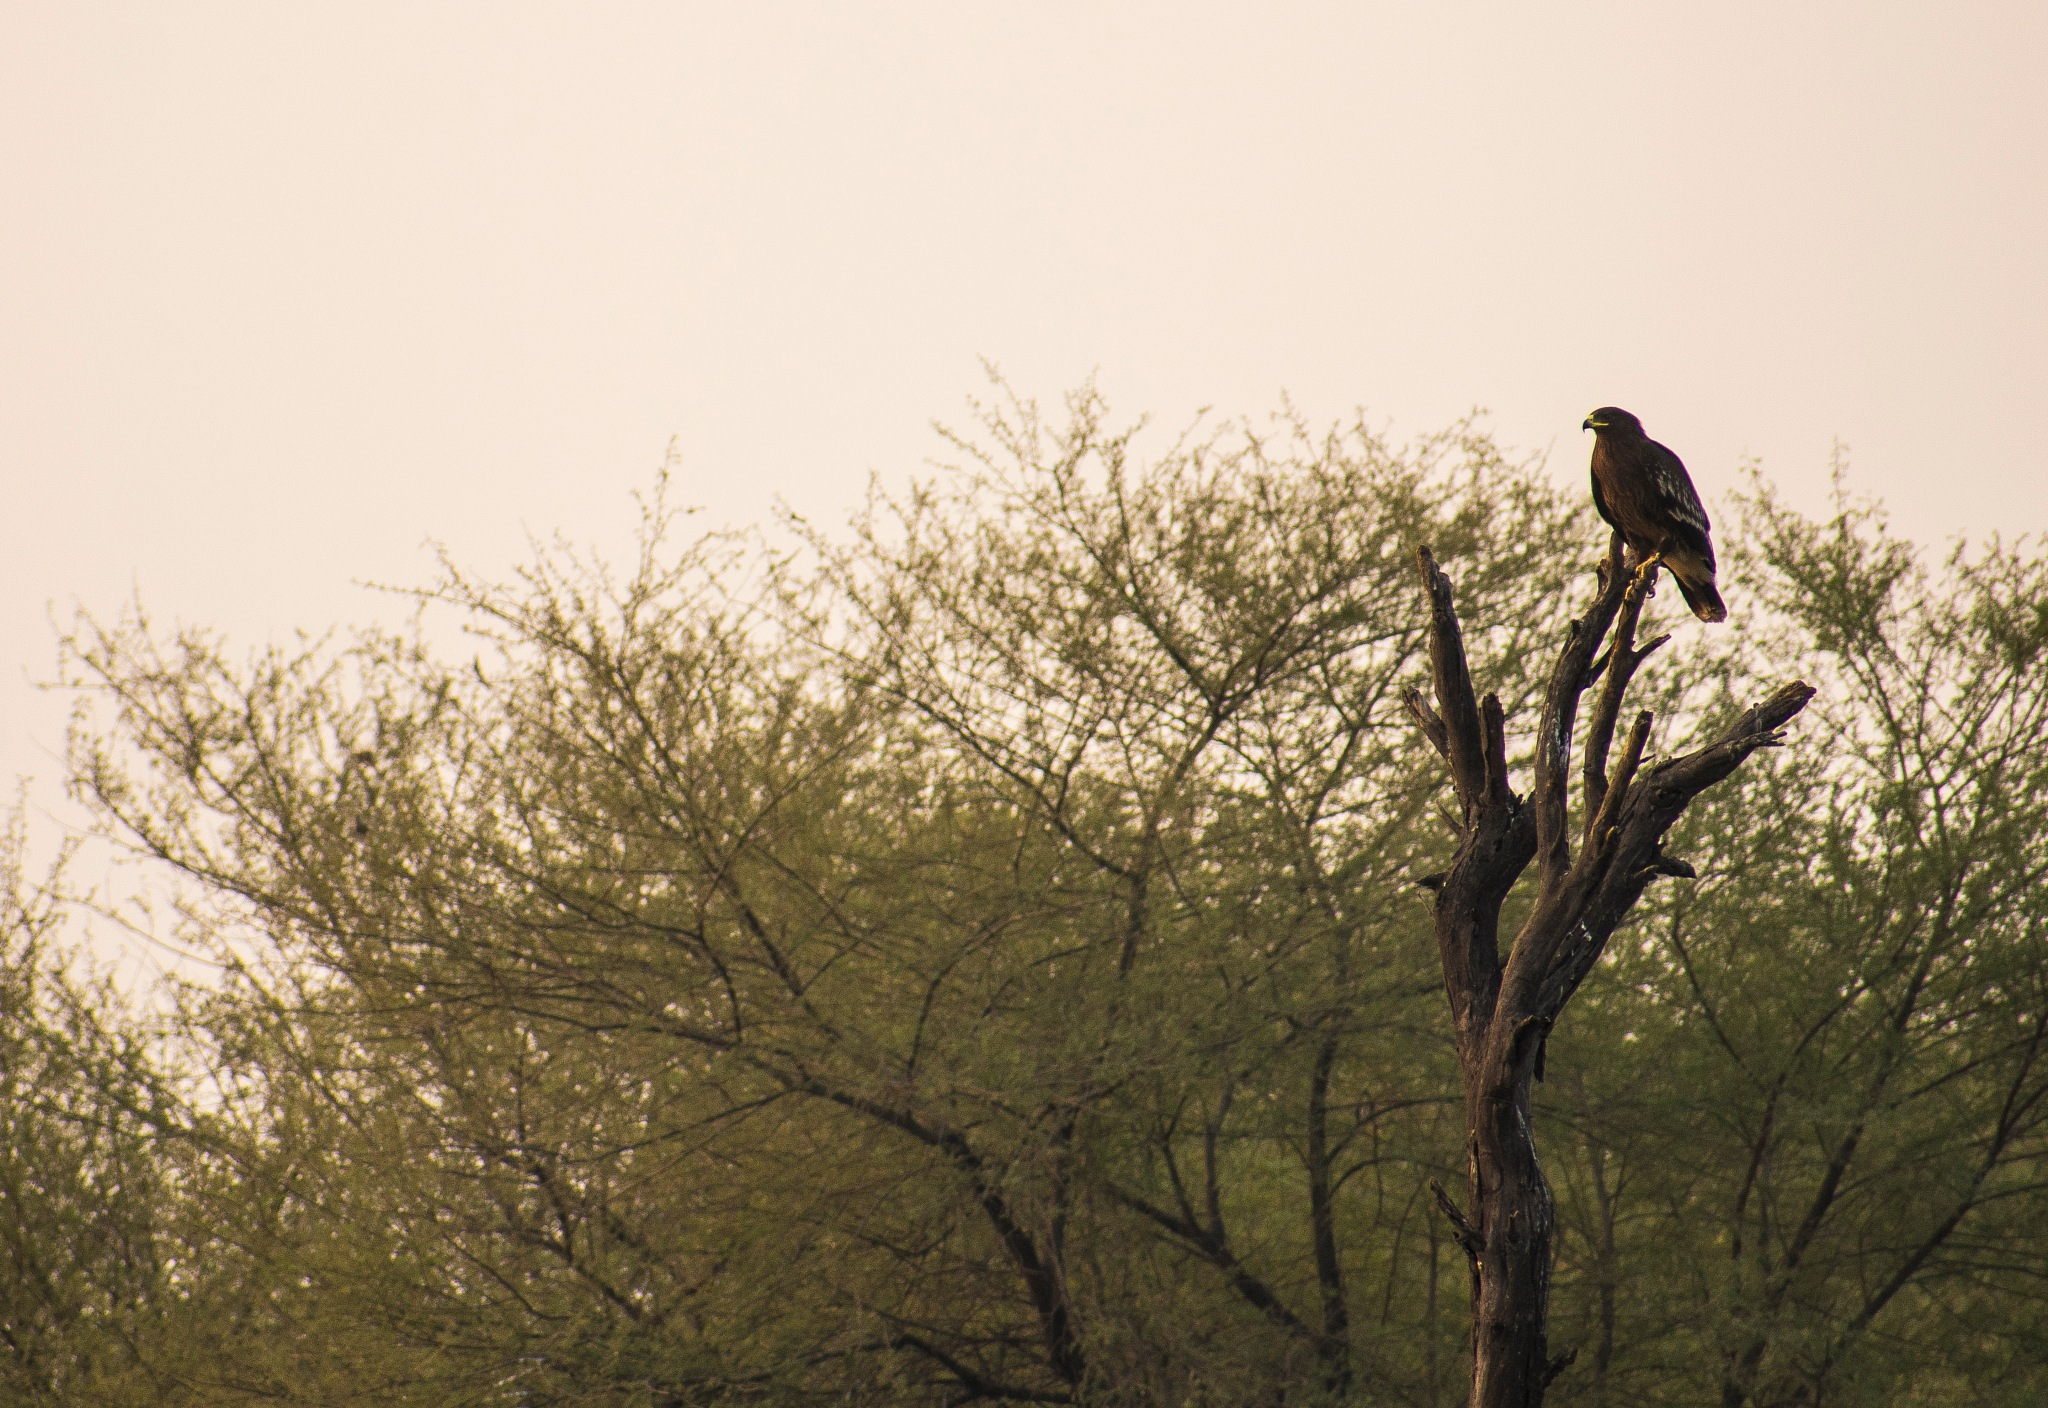 spotted eagle by Harsh Patel